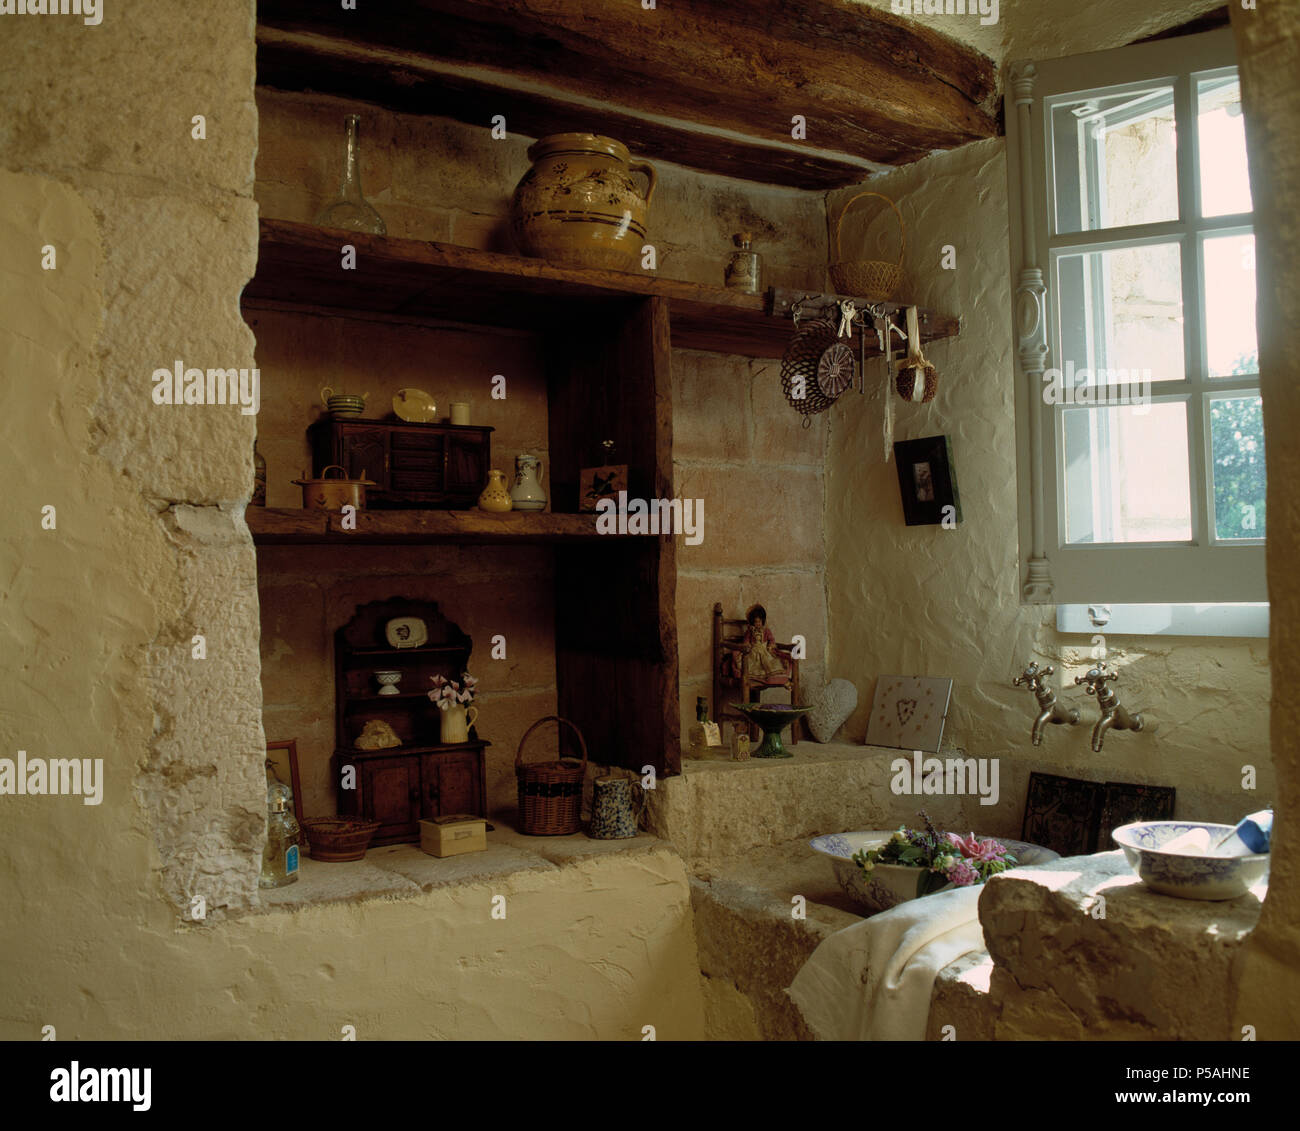 Wooden Shelves In Alcove In Old French Country Kitchen With Stone